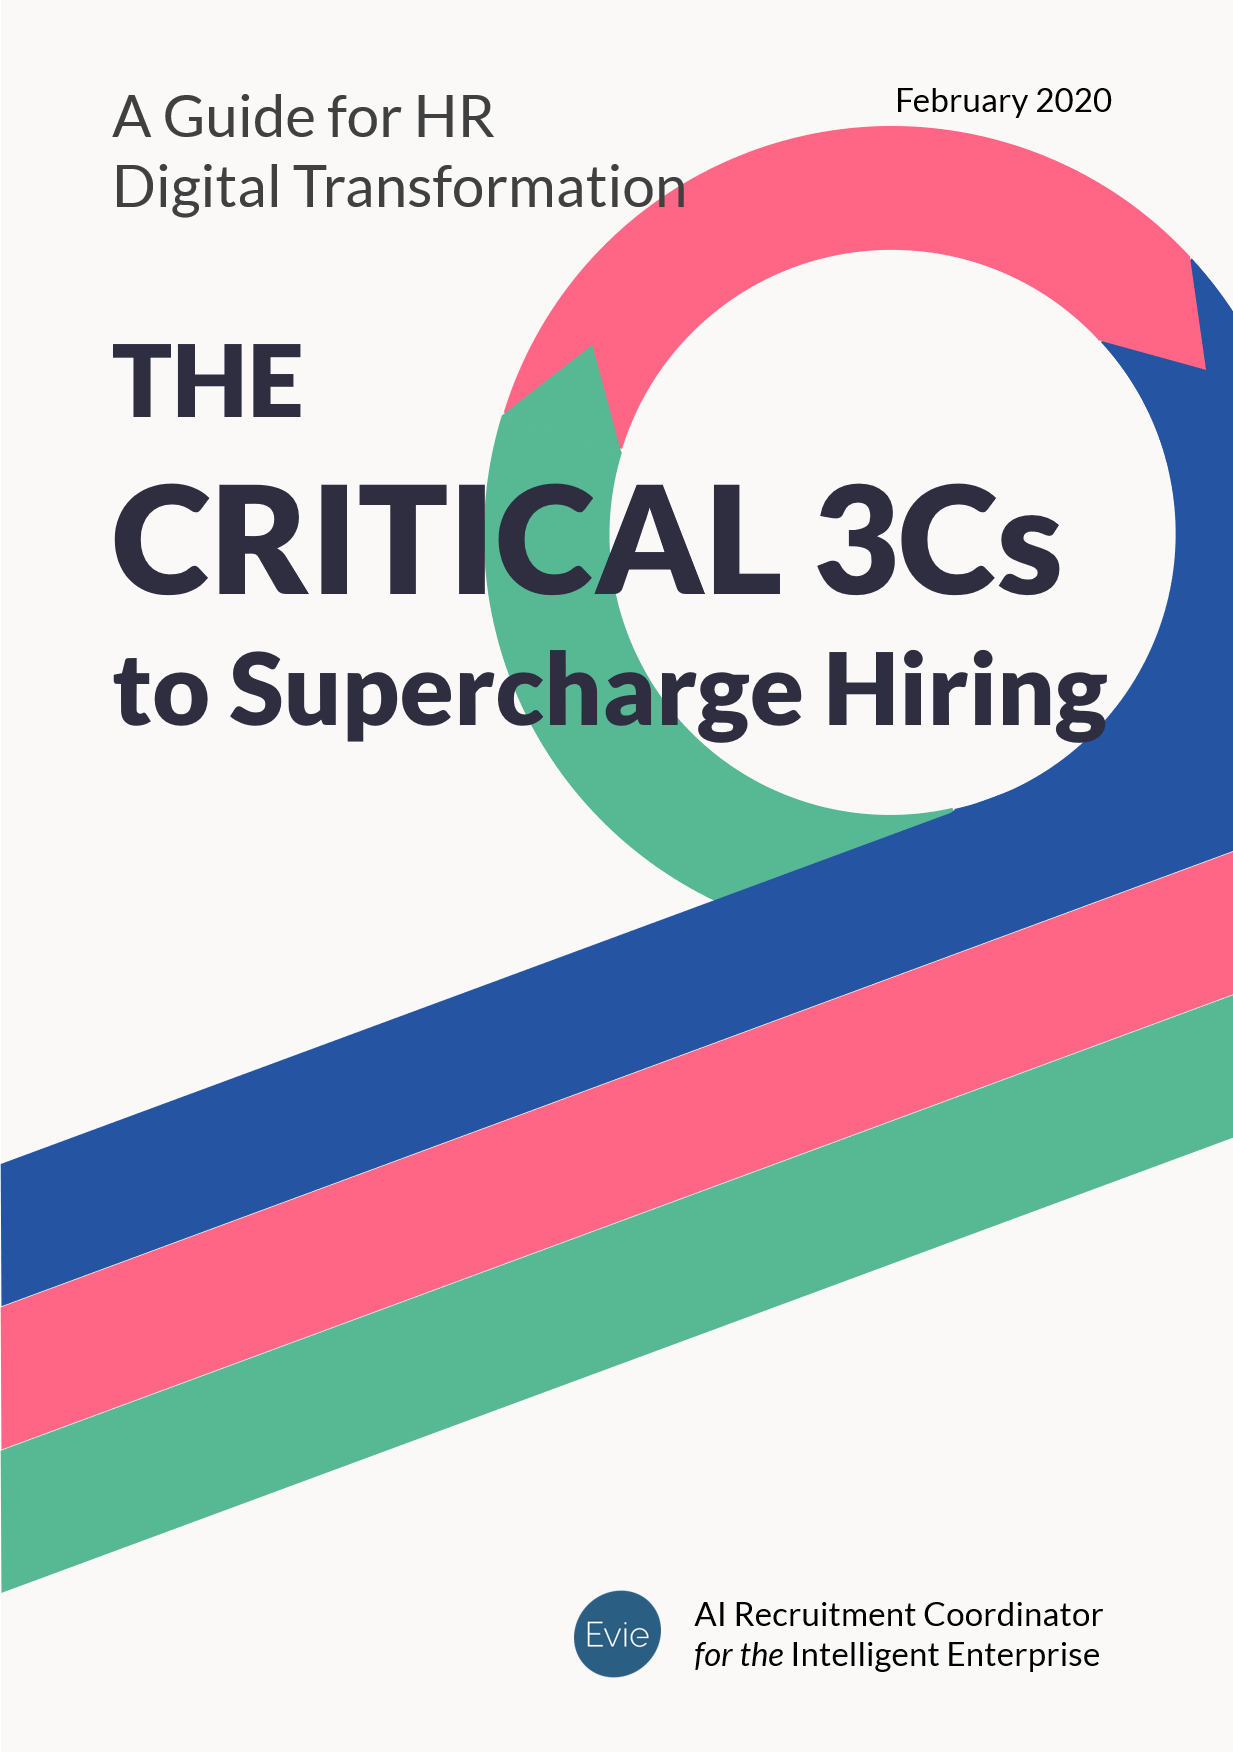 A Guide for HR Digital Transformation: The Critical 3Cs to Supercharge Hiring